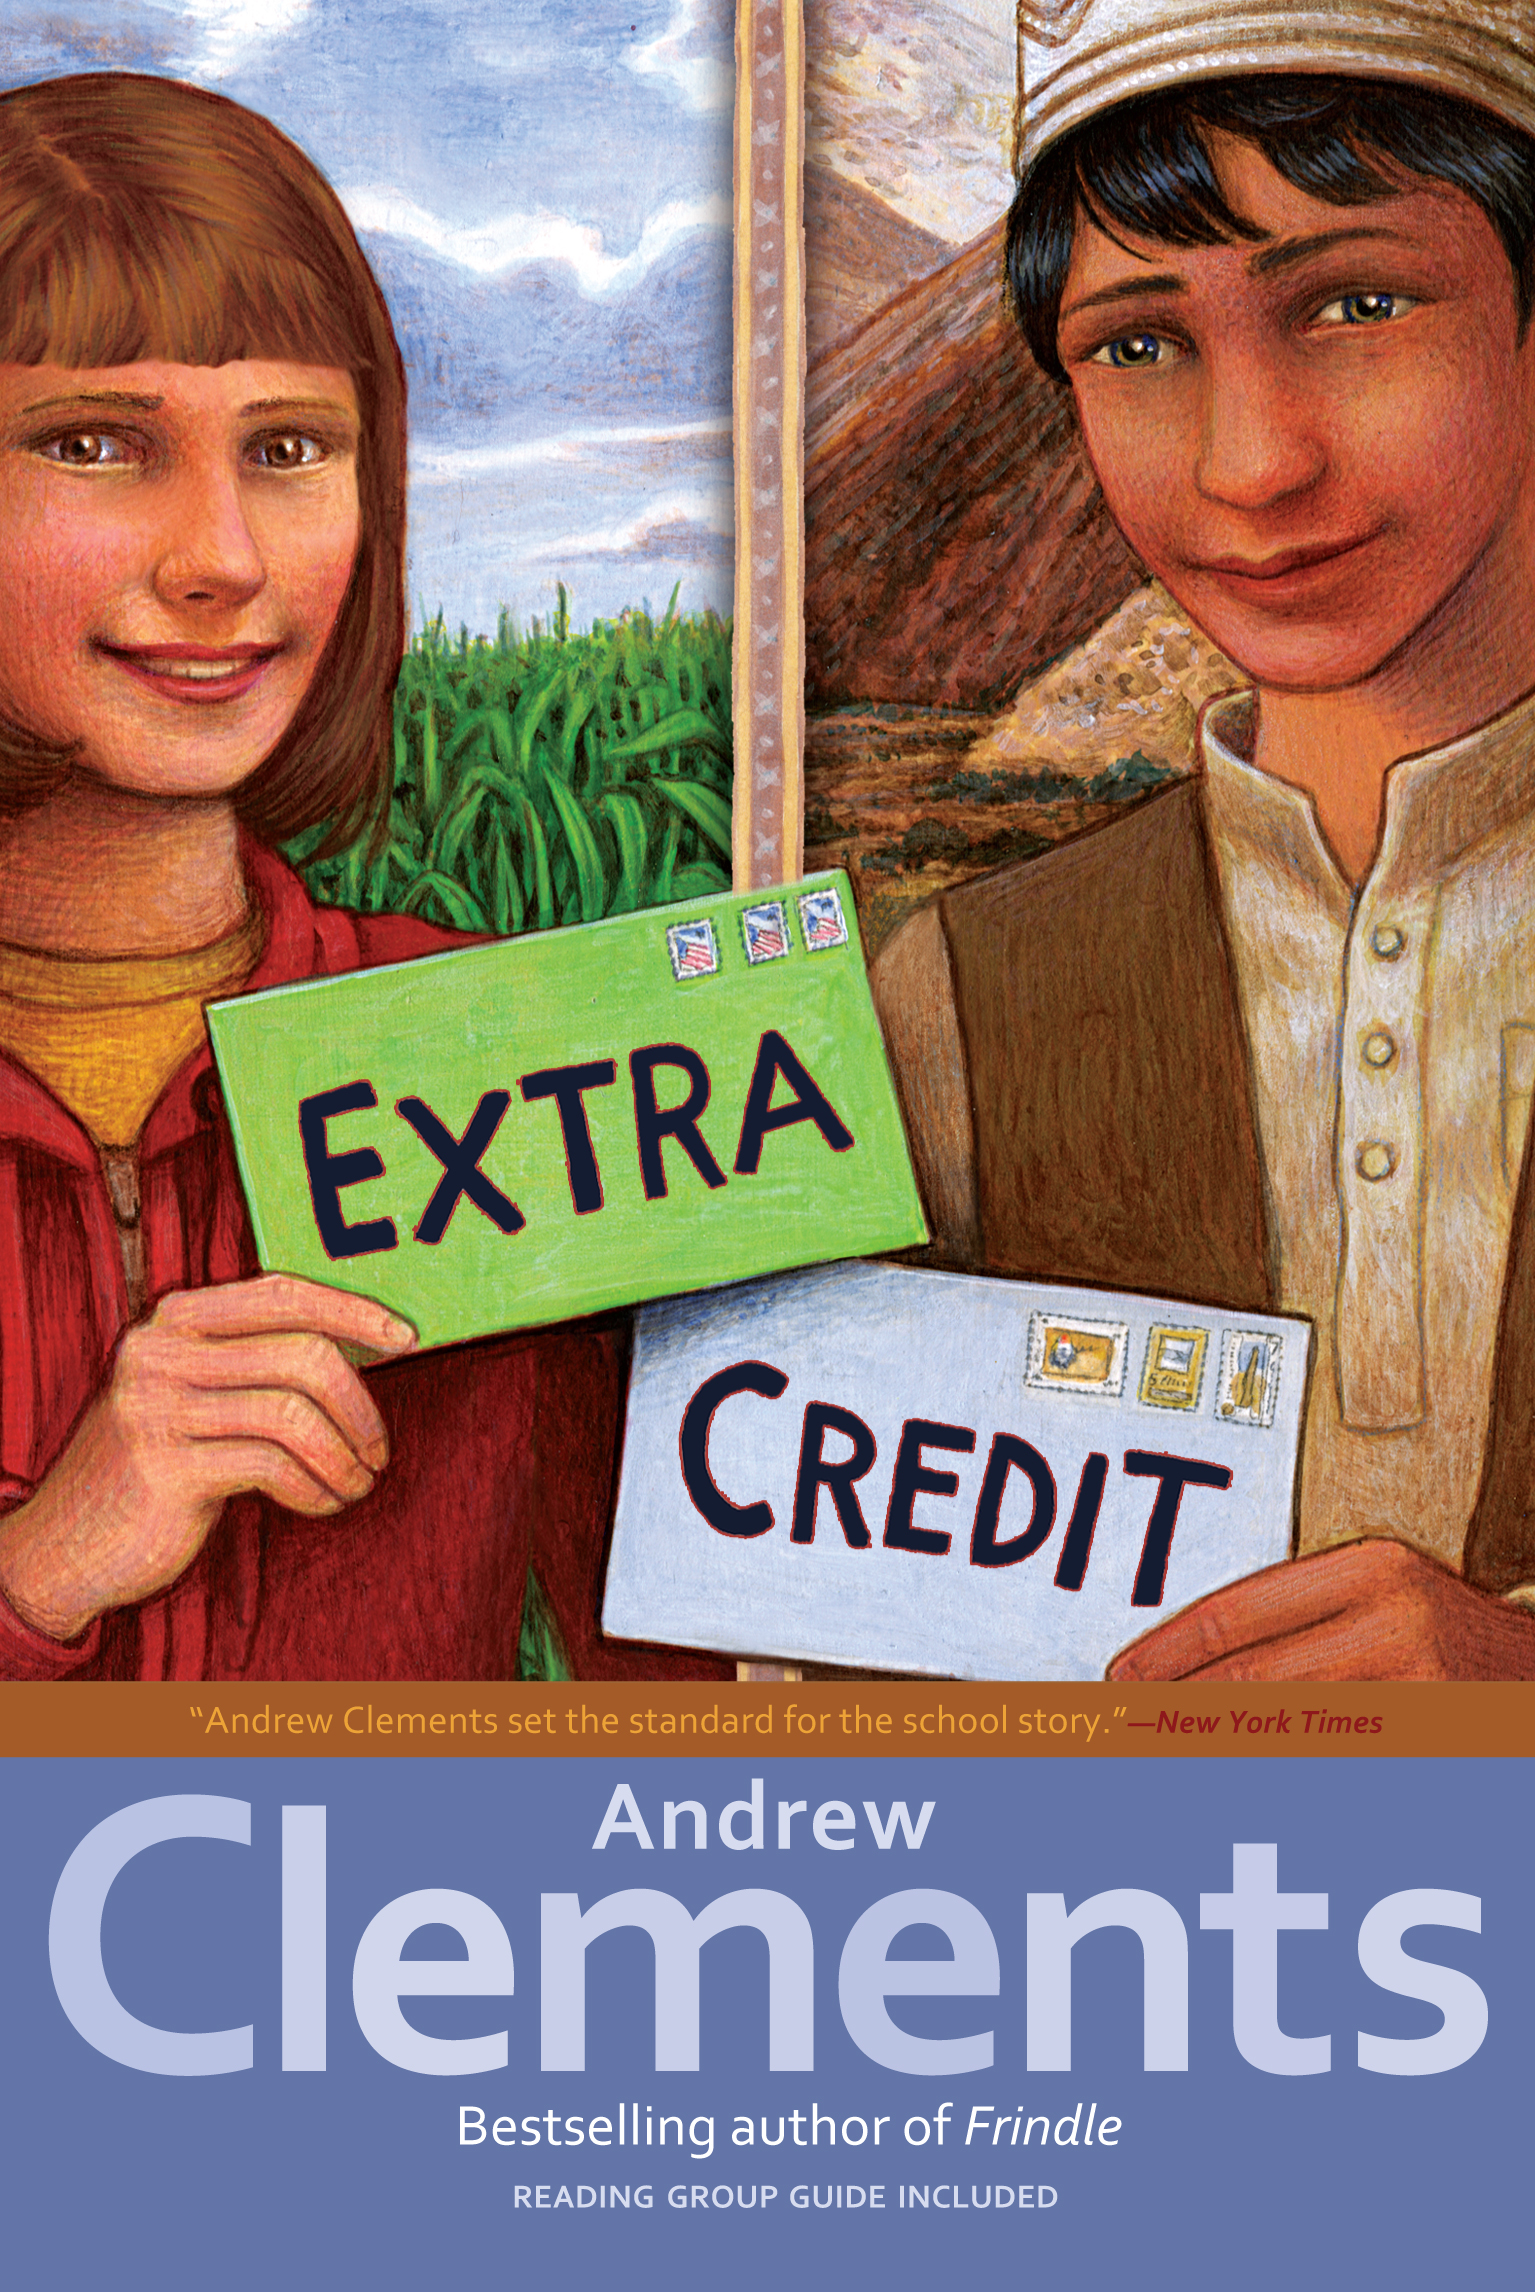 Book Cover Image (jpg): Extra Credit